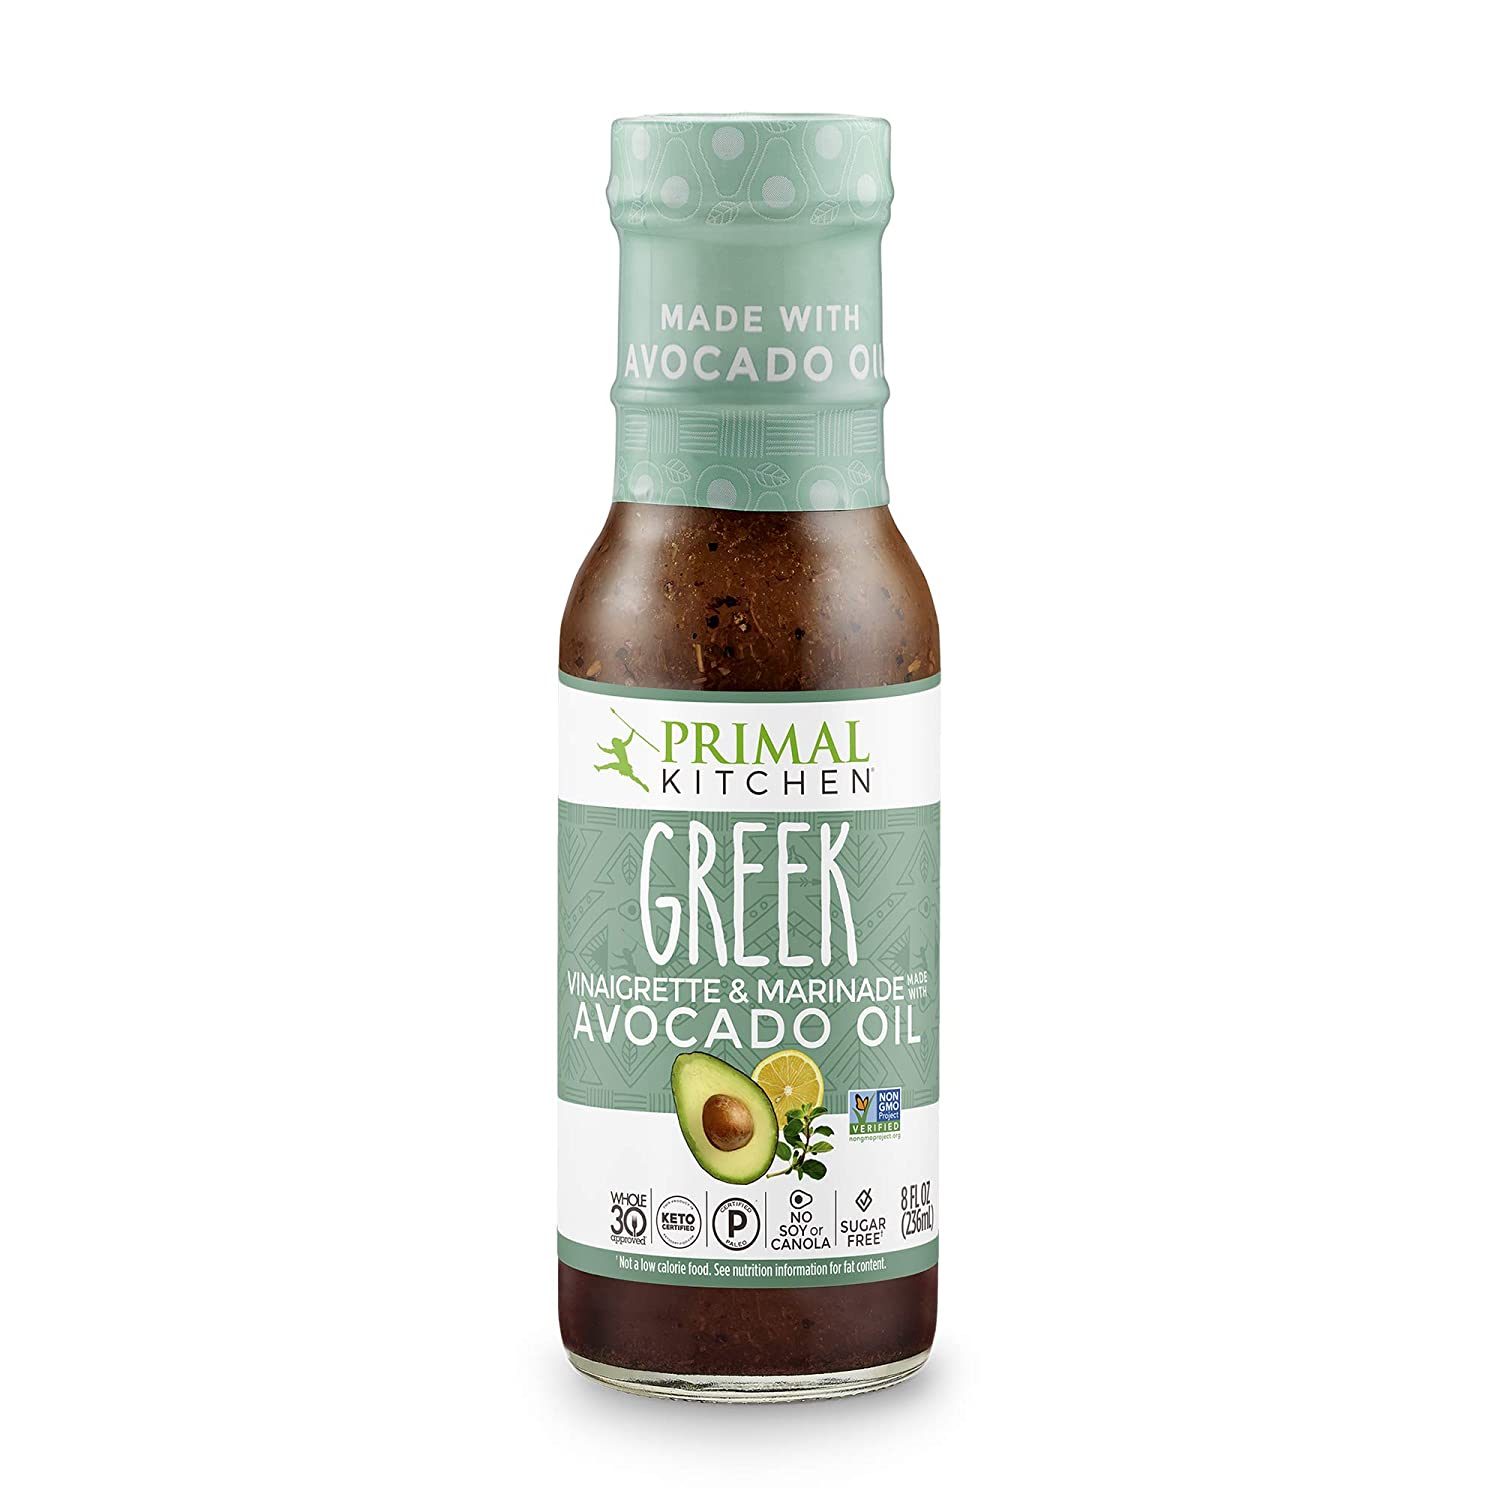 Primal Kitchen - Greek, Avocado Oil-Based Dressing and Marinade, Whole30 and Paleo Approved, Pack of 1